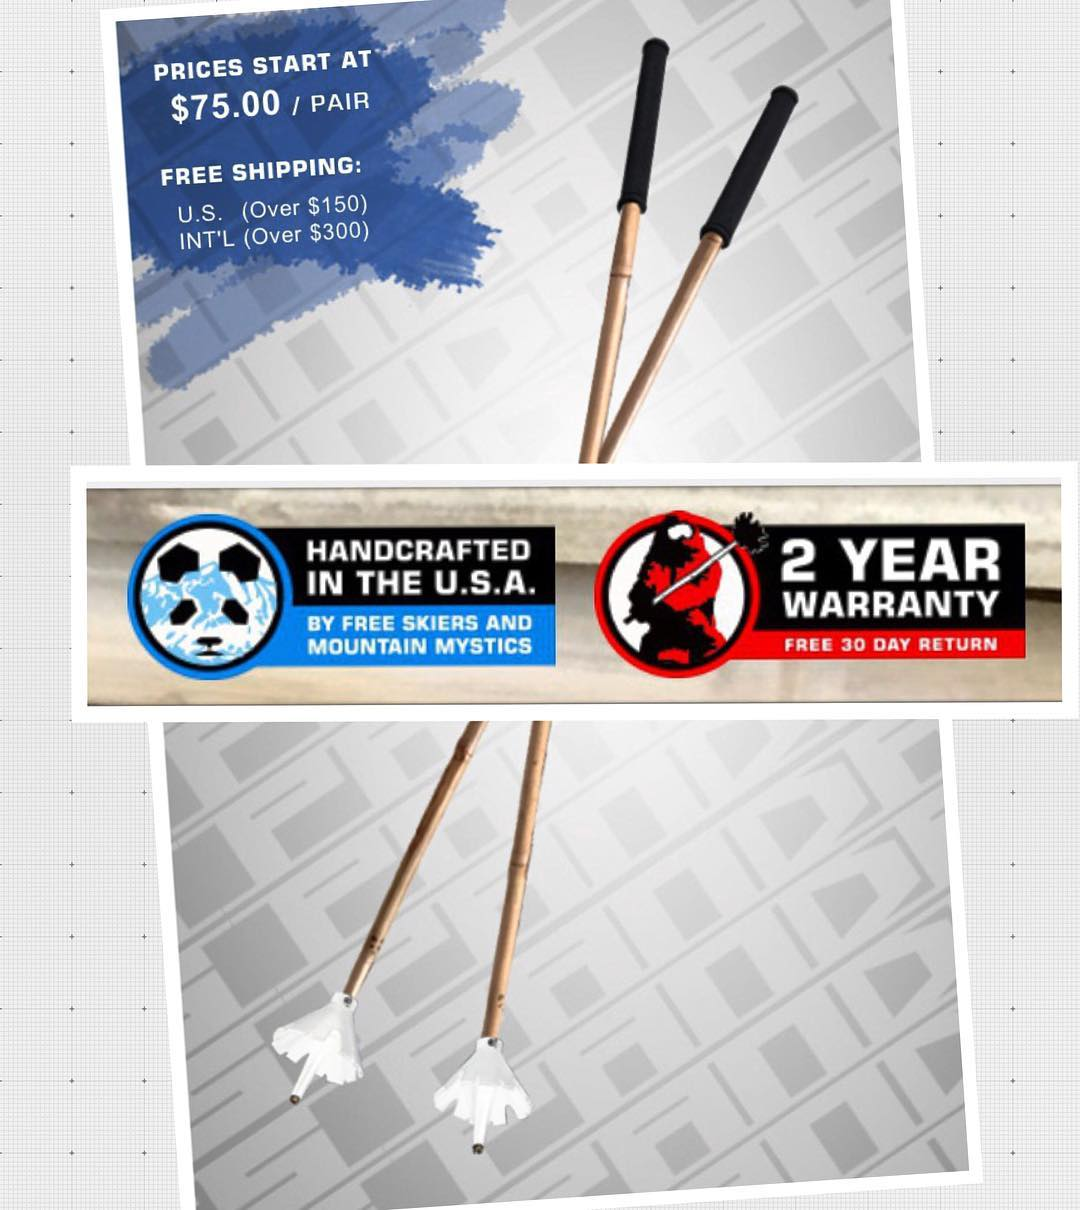 In case you hadn't noticed, Panda Poles now start at only $75! Whaaaaa?!!! And with the promo code TRIBE UP you can grab a pair of Magic Ski Wands for as low as only $60!  Oh yeah, and we now offer a 2 YEAR WARRANTY... BOOM! Magic!  #TribeUP at...